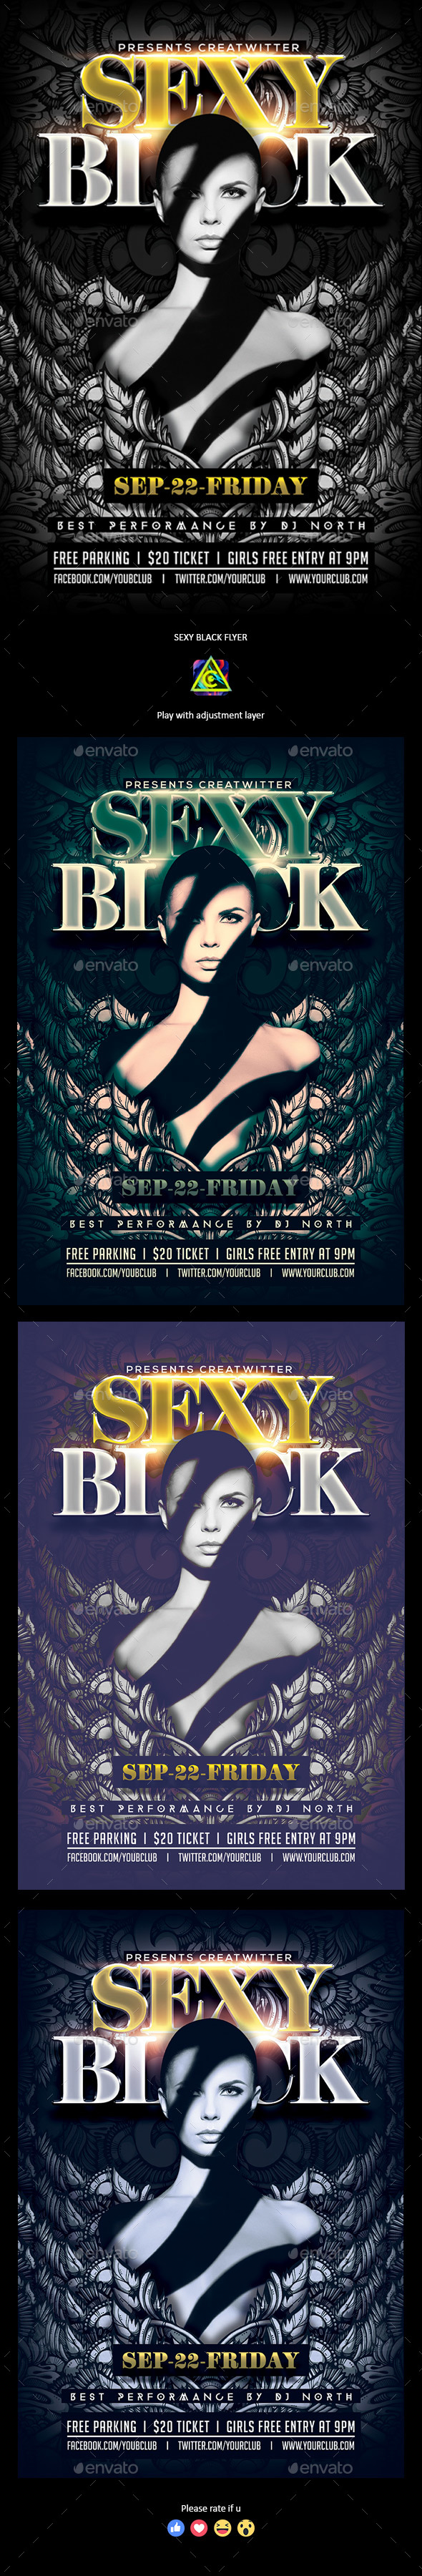 Sexy Black Flyer - Clubs & Parties Events